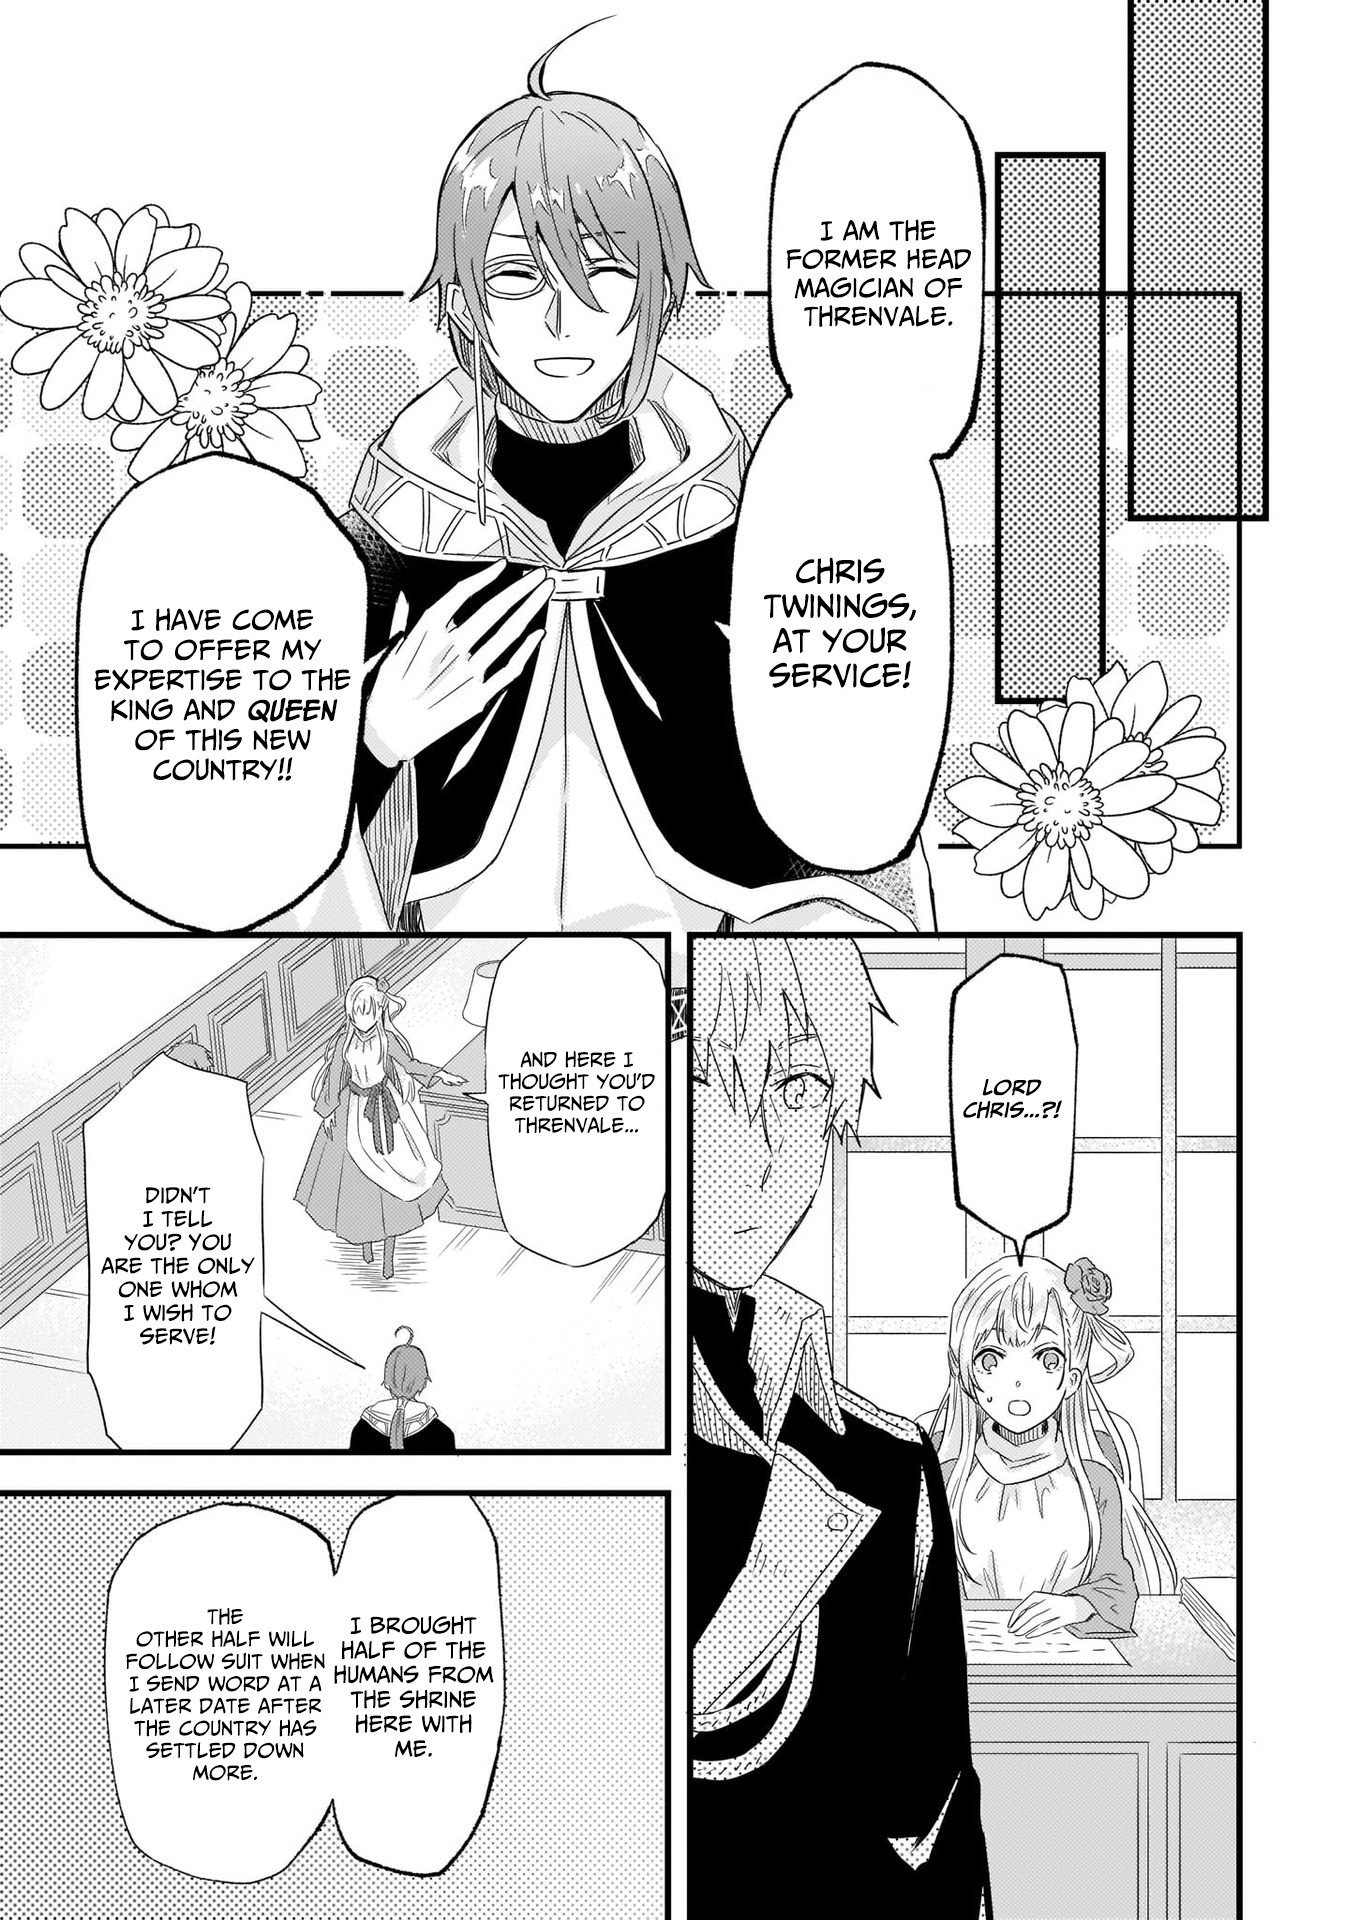 Manga I was Told to Relinquish My Fiance to My Little Sister, and the Greatest Dragon Took a Liking to Me and Unbelievably Took Over the Kingdom - Chapter 10 Page 17